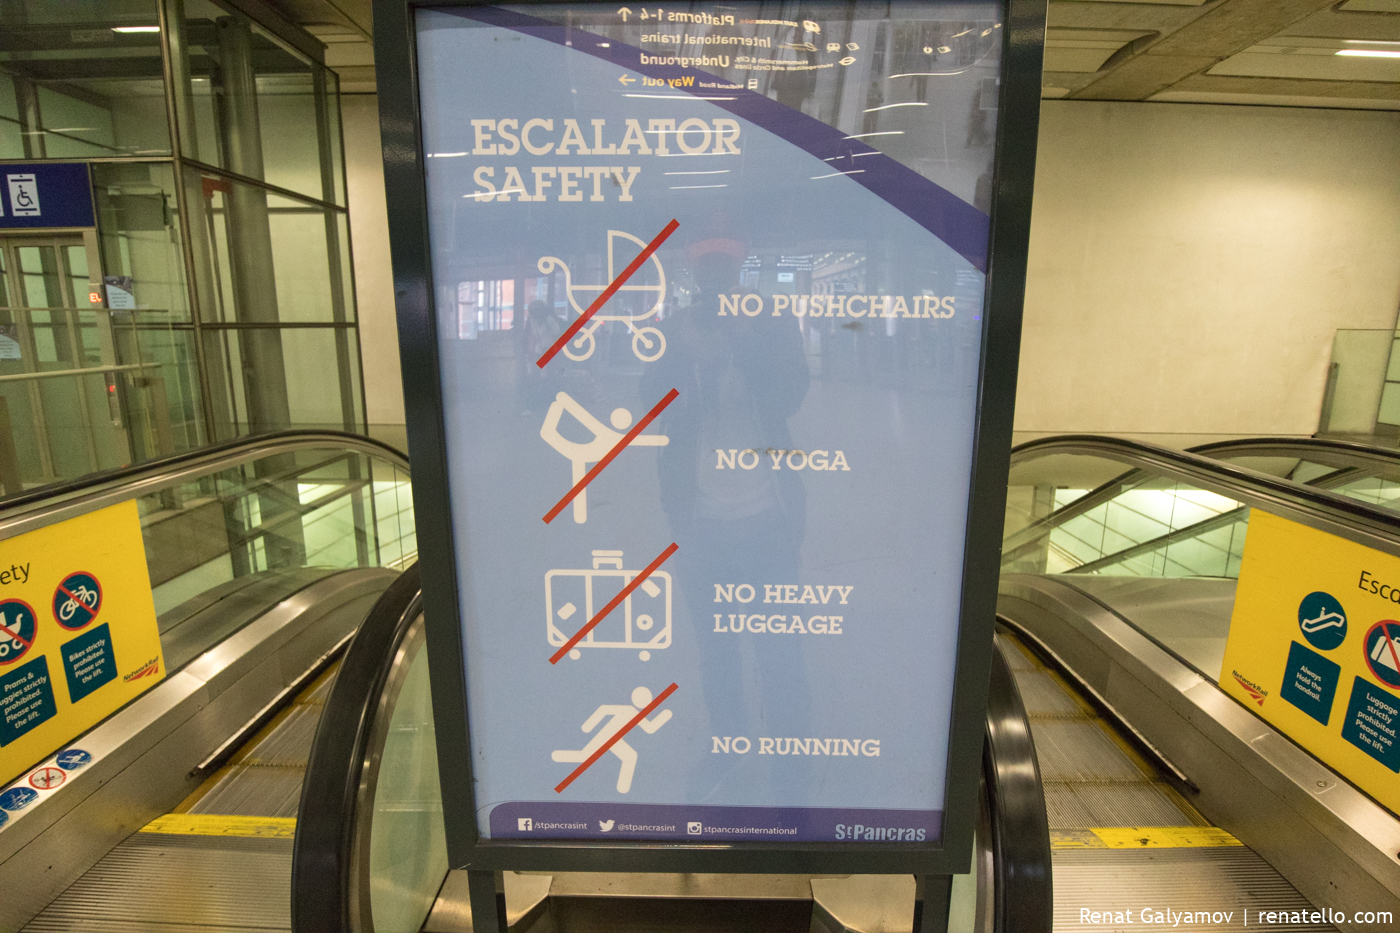 No yoga on the escalator sign.